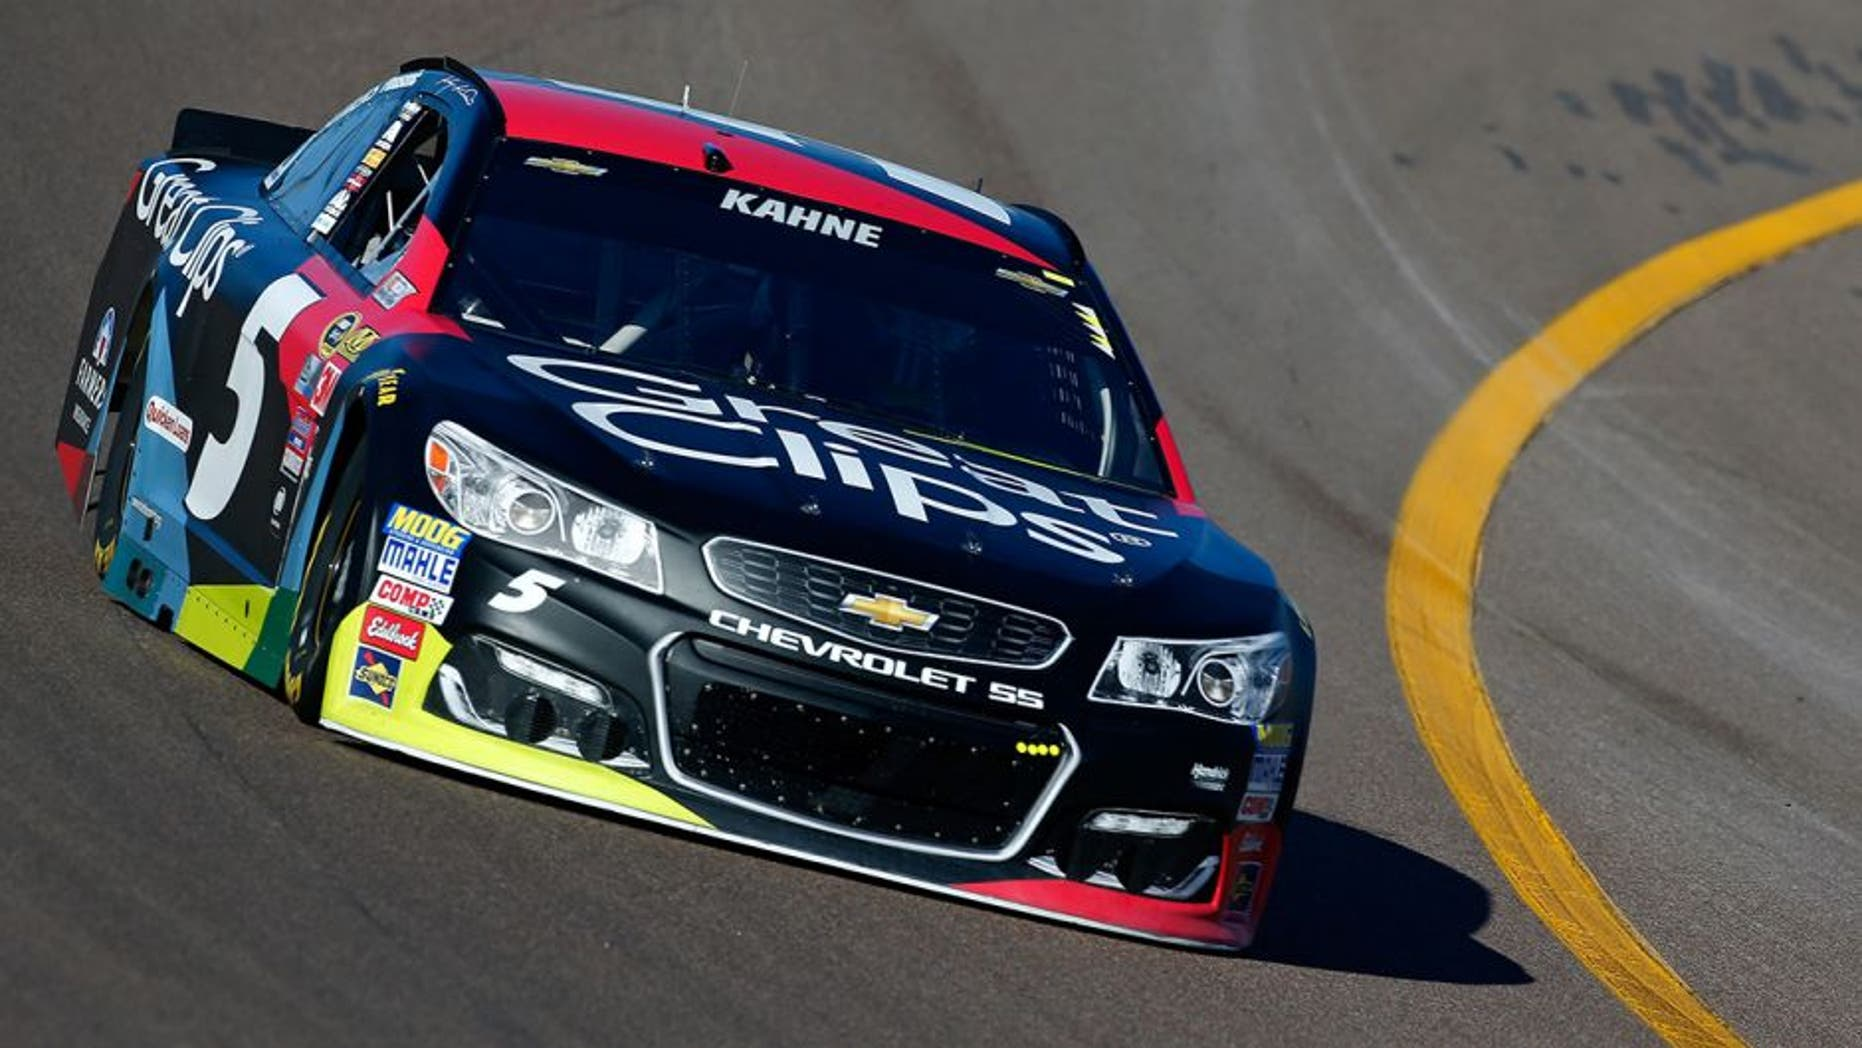 AVONDALE, AZ - MARCH 12: Kasey Kahne, driver of the #5 Great Clips Chevrolet, practices for the NASCAR Sprint Cup Series Good Sam 500 at Phoenix International Raceway on March 12, 2016 in Avondale, Arizona. (Photo by Jonathan Ferrey/NASCAR via Getty Images)